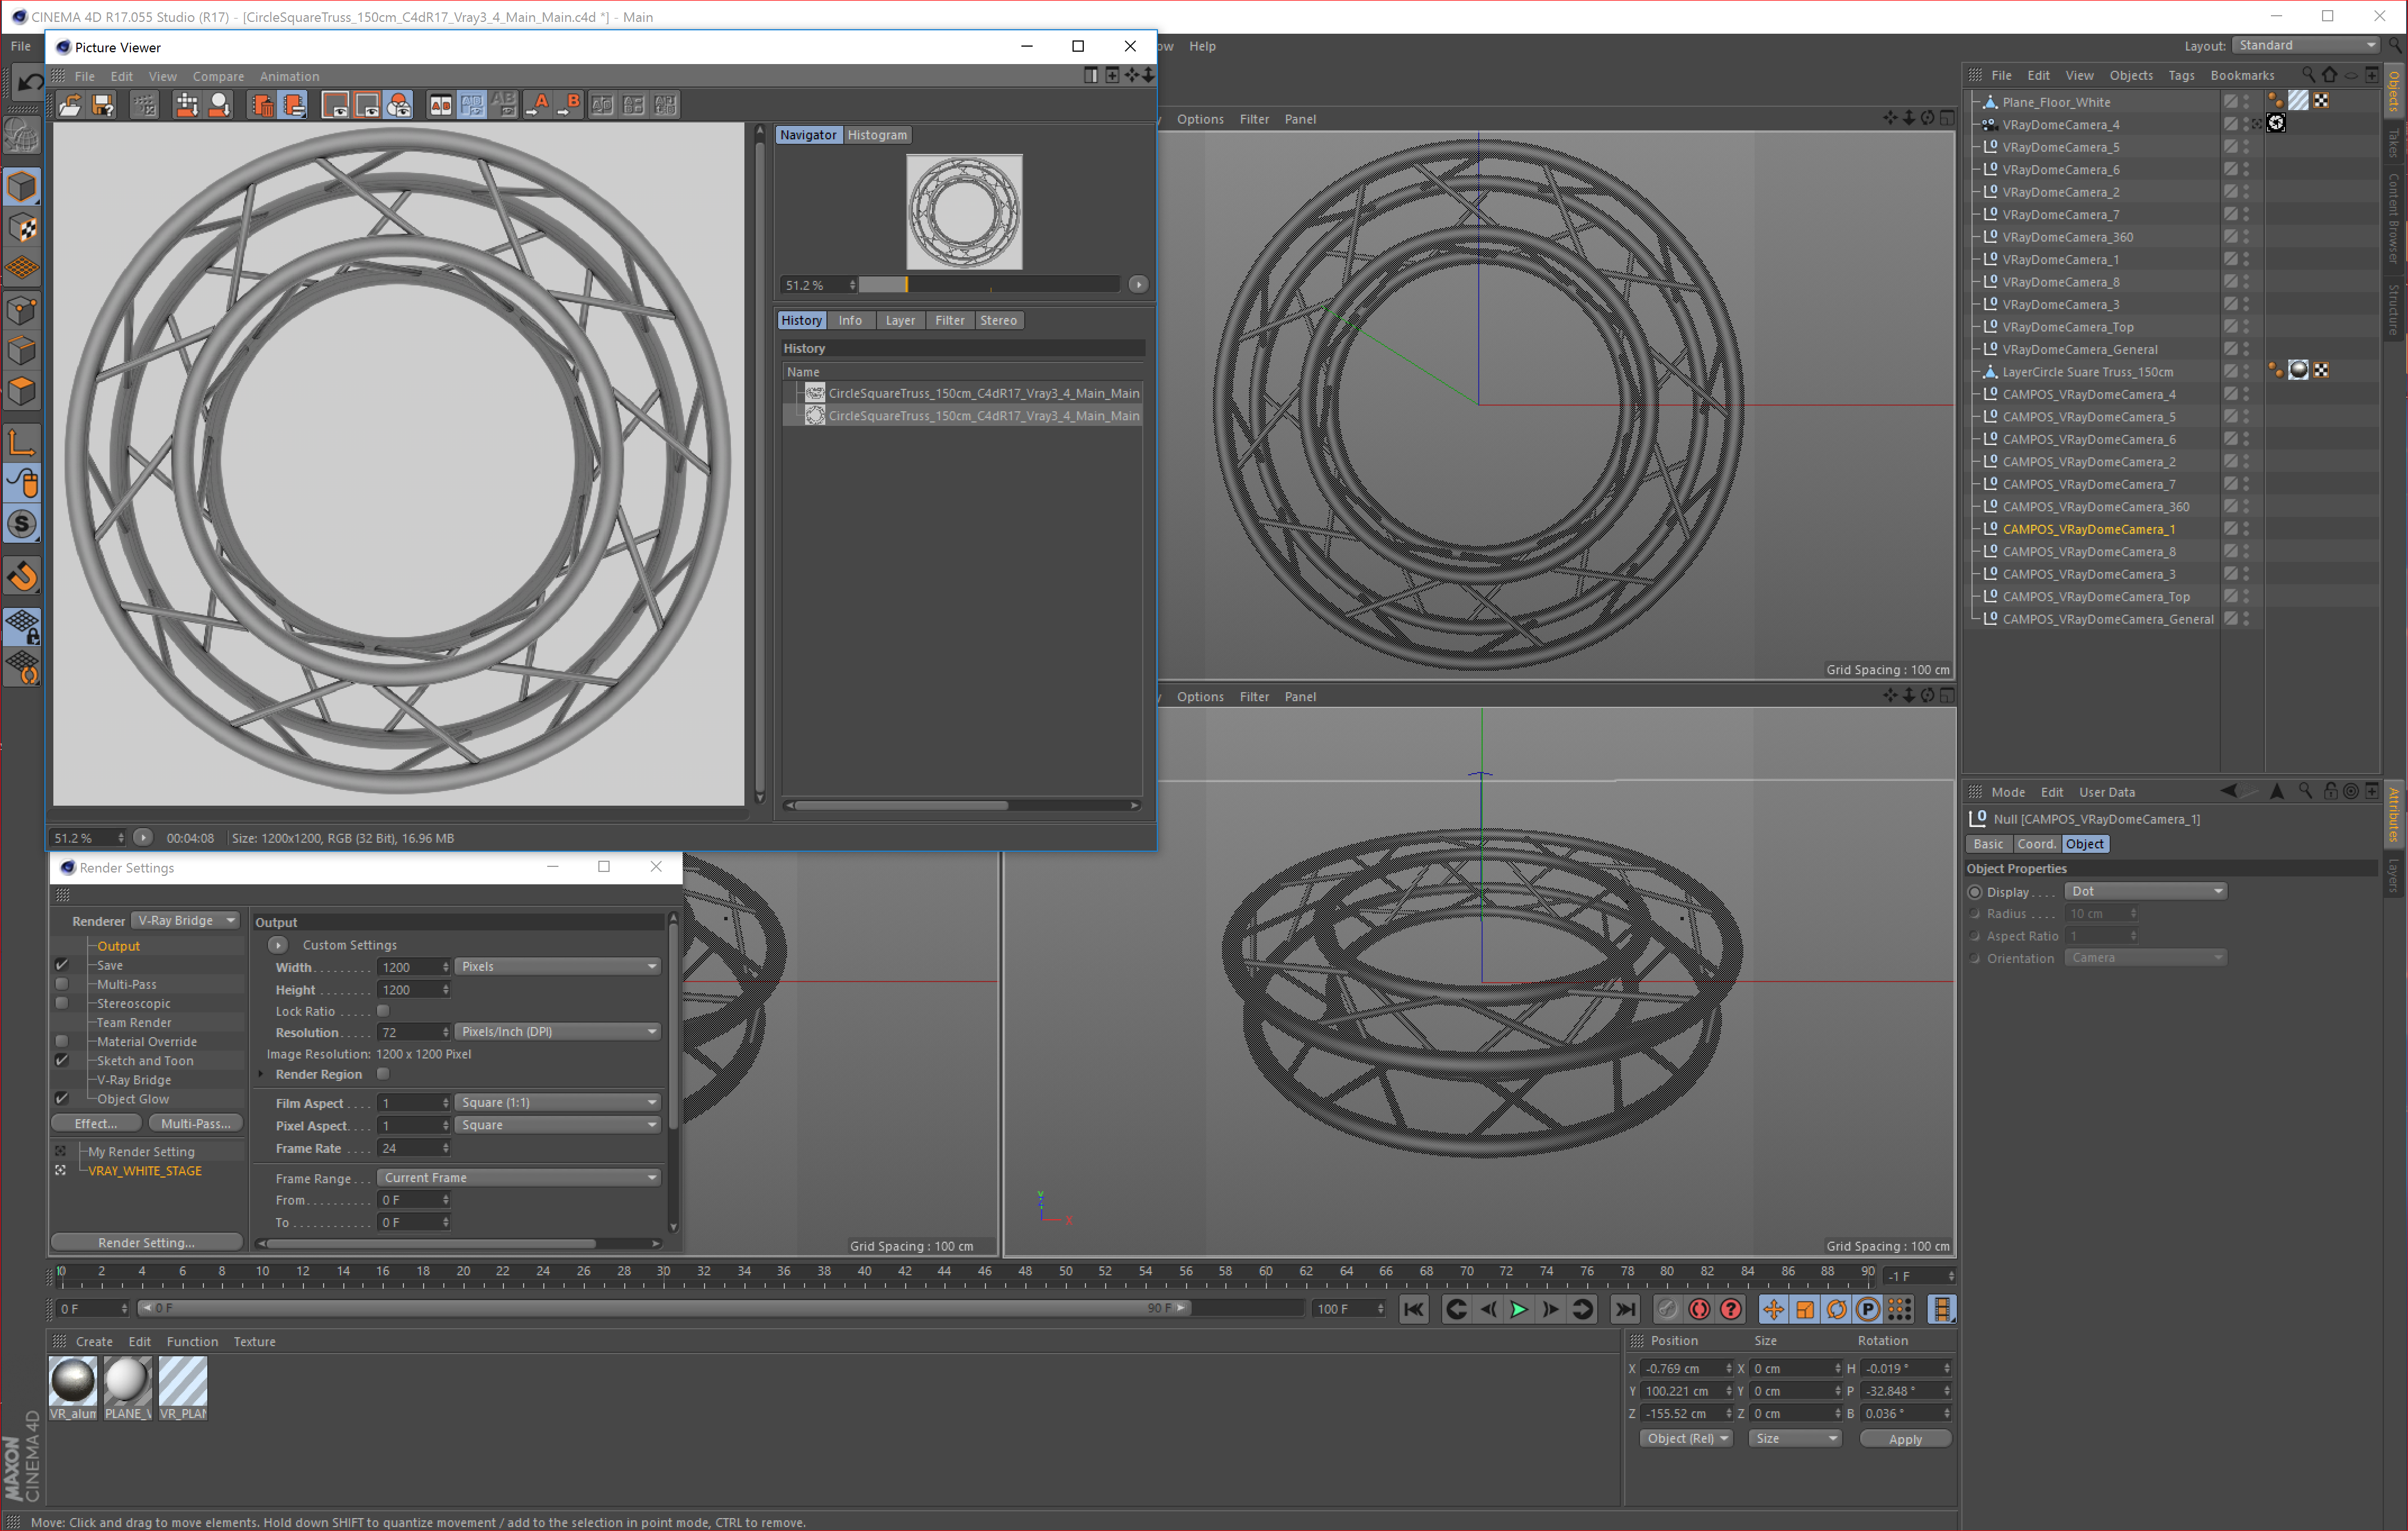 circle square truss full diameter 150cm 3d model 3ds max fbx c4d dae  obj 252303